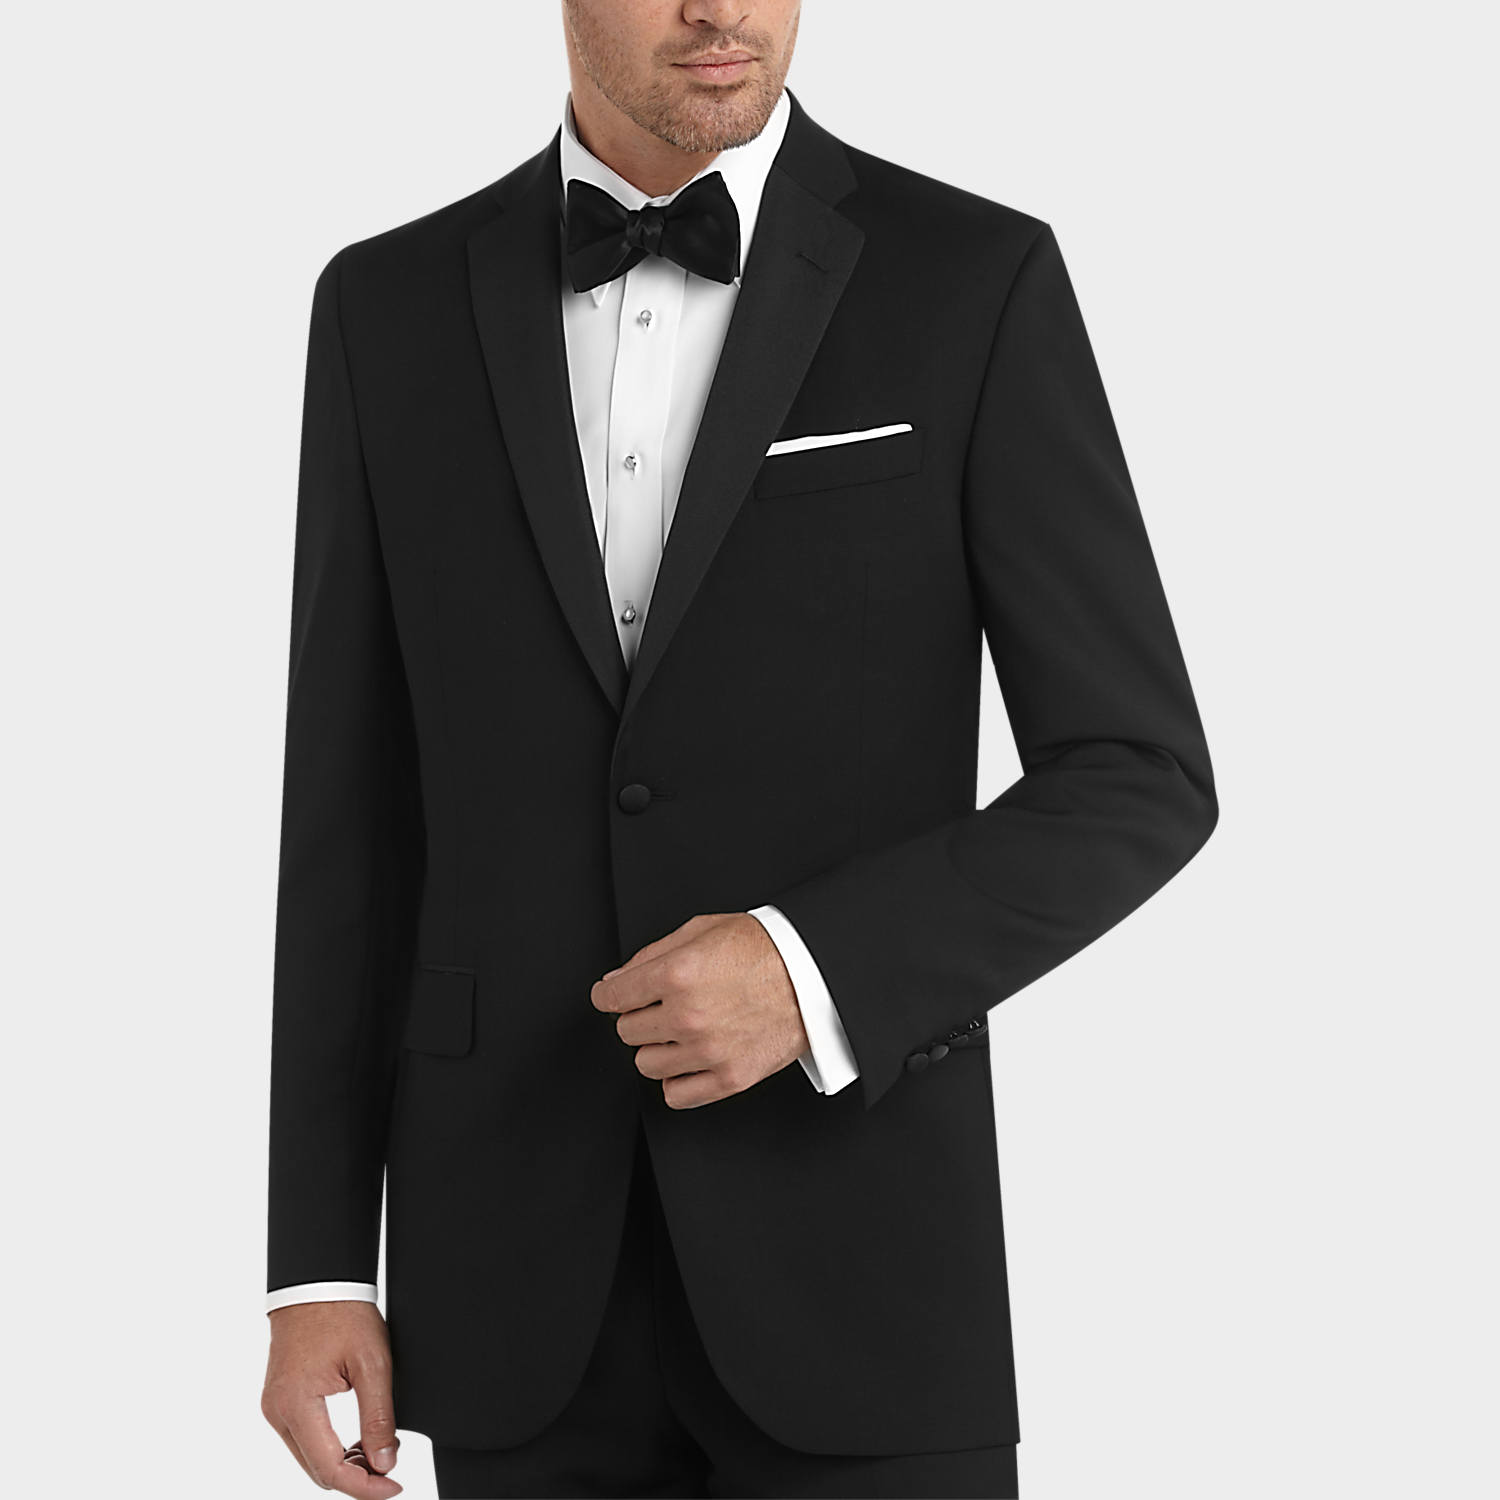 BLACK by Vera Wang Black Slim Fit Tuxedo - Men's Tuxedos | Men's ...